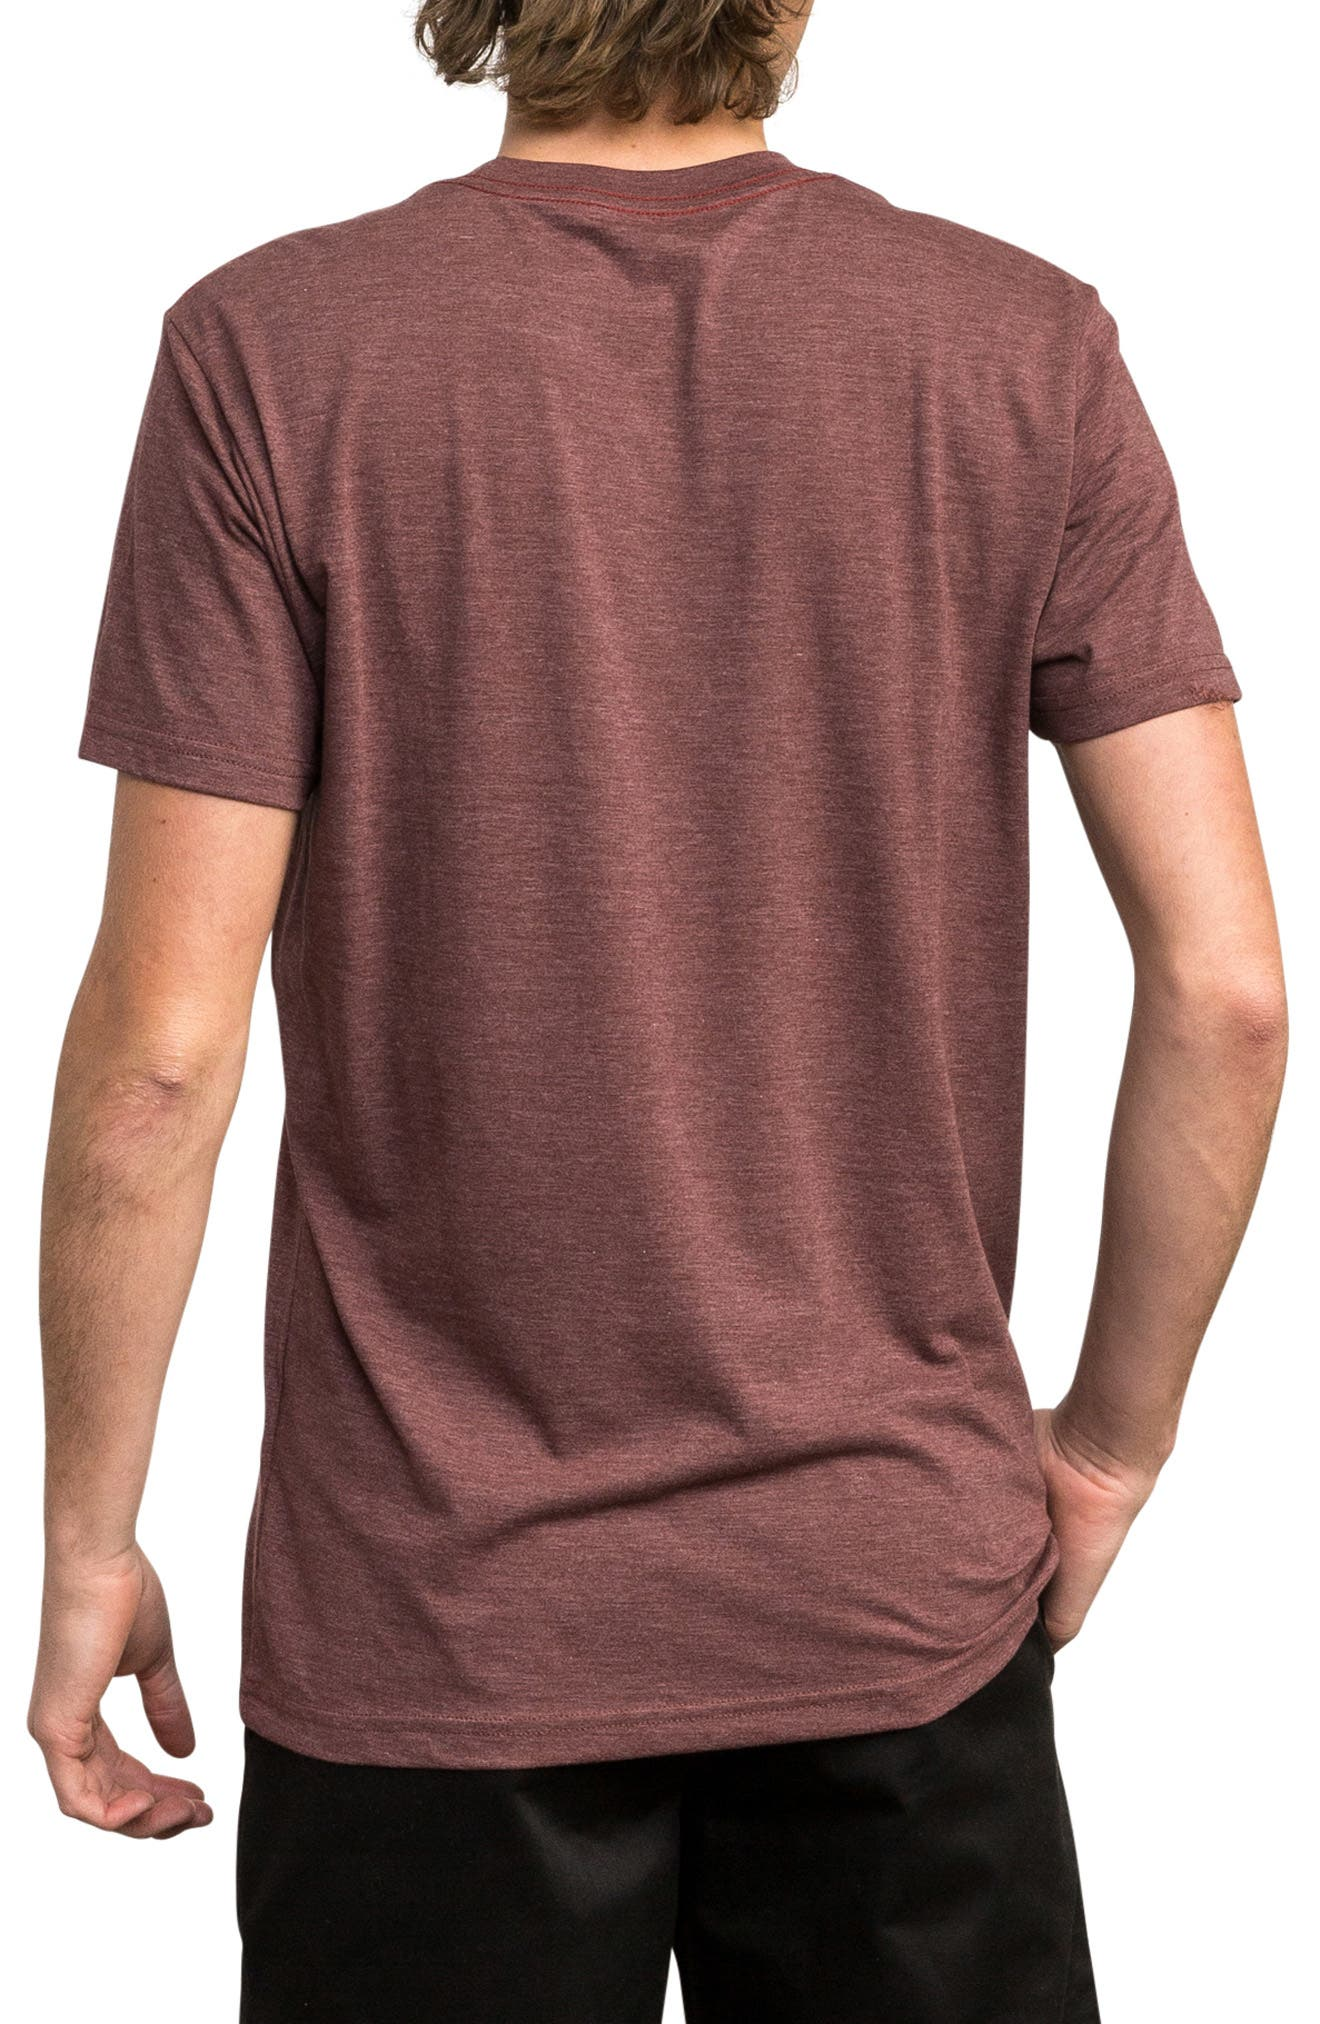 Pinner All the Way Graphic T-Shirt,                             Alternate thumbnail 2, color,                             BORDEAUX